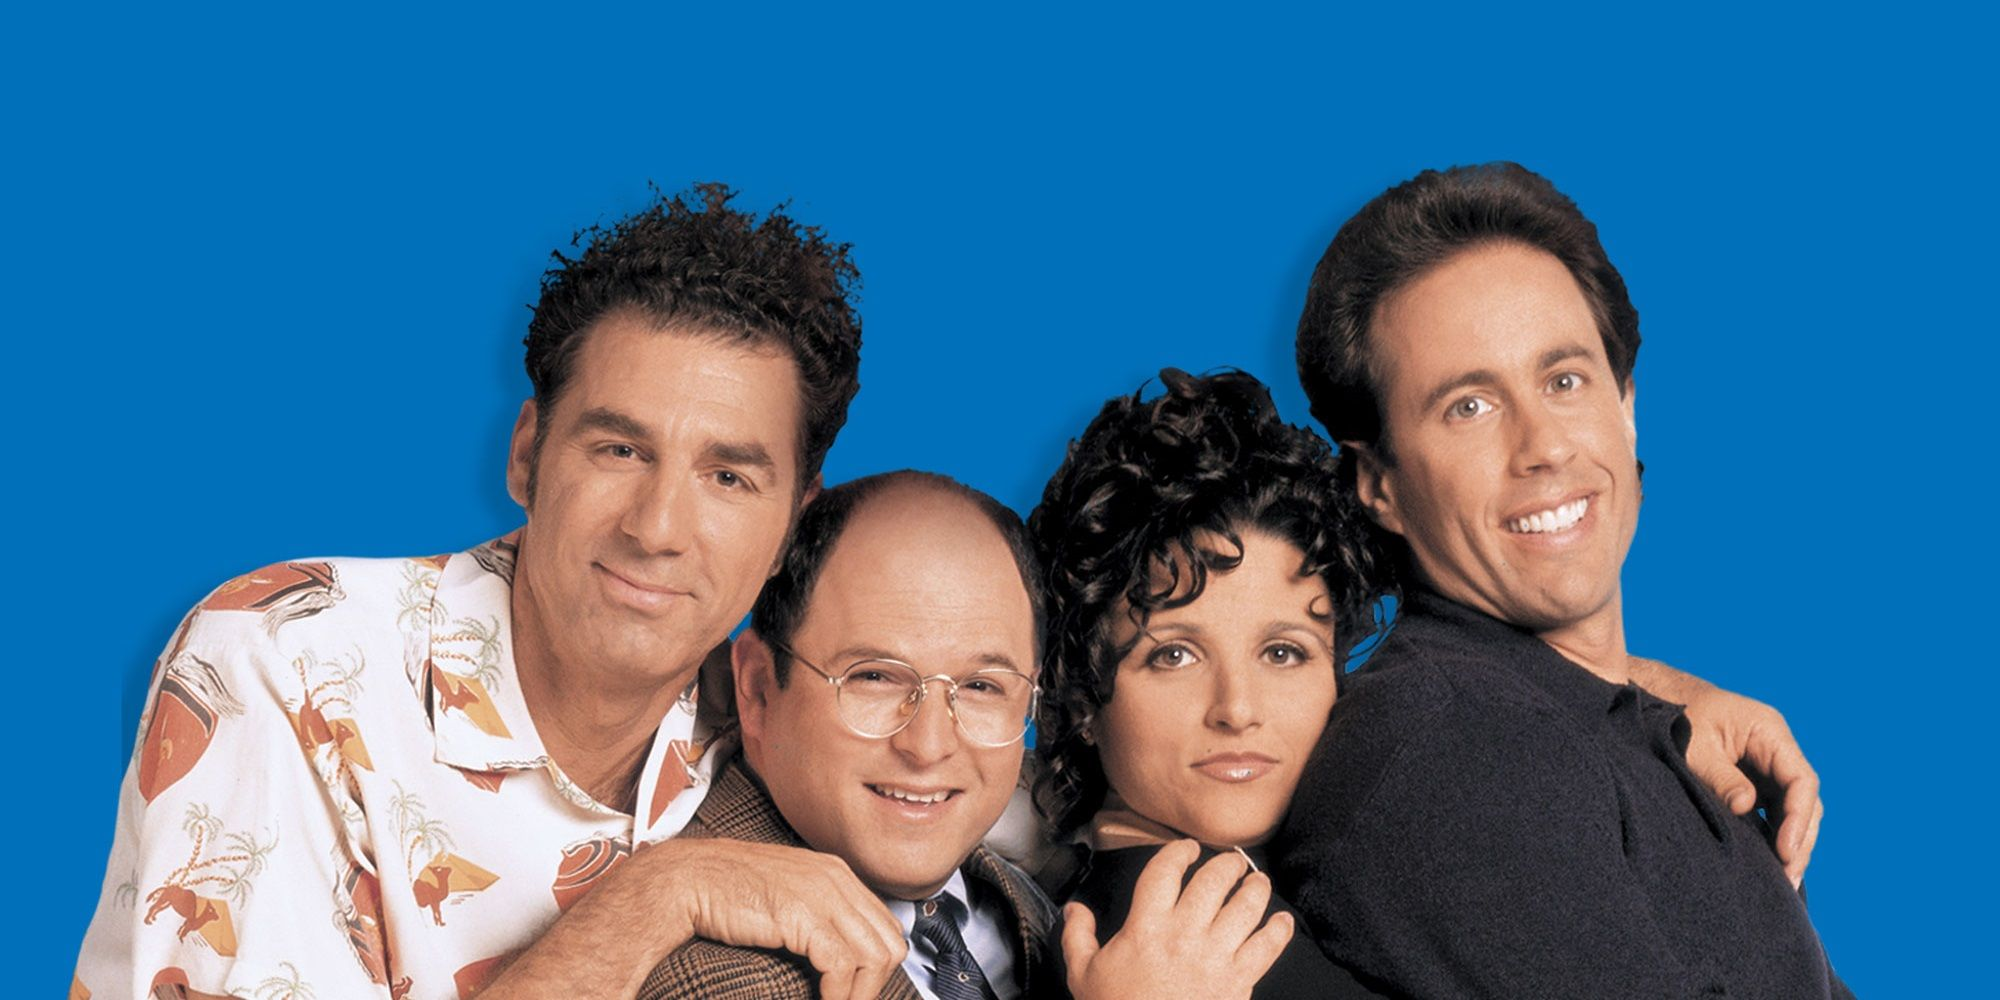 seinfeld analysis It's been 20 years since the seinfeld finales in honor, we analyzed every one of  the show's scripts to see what we could learn.